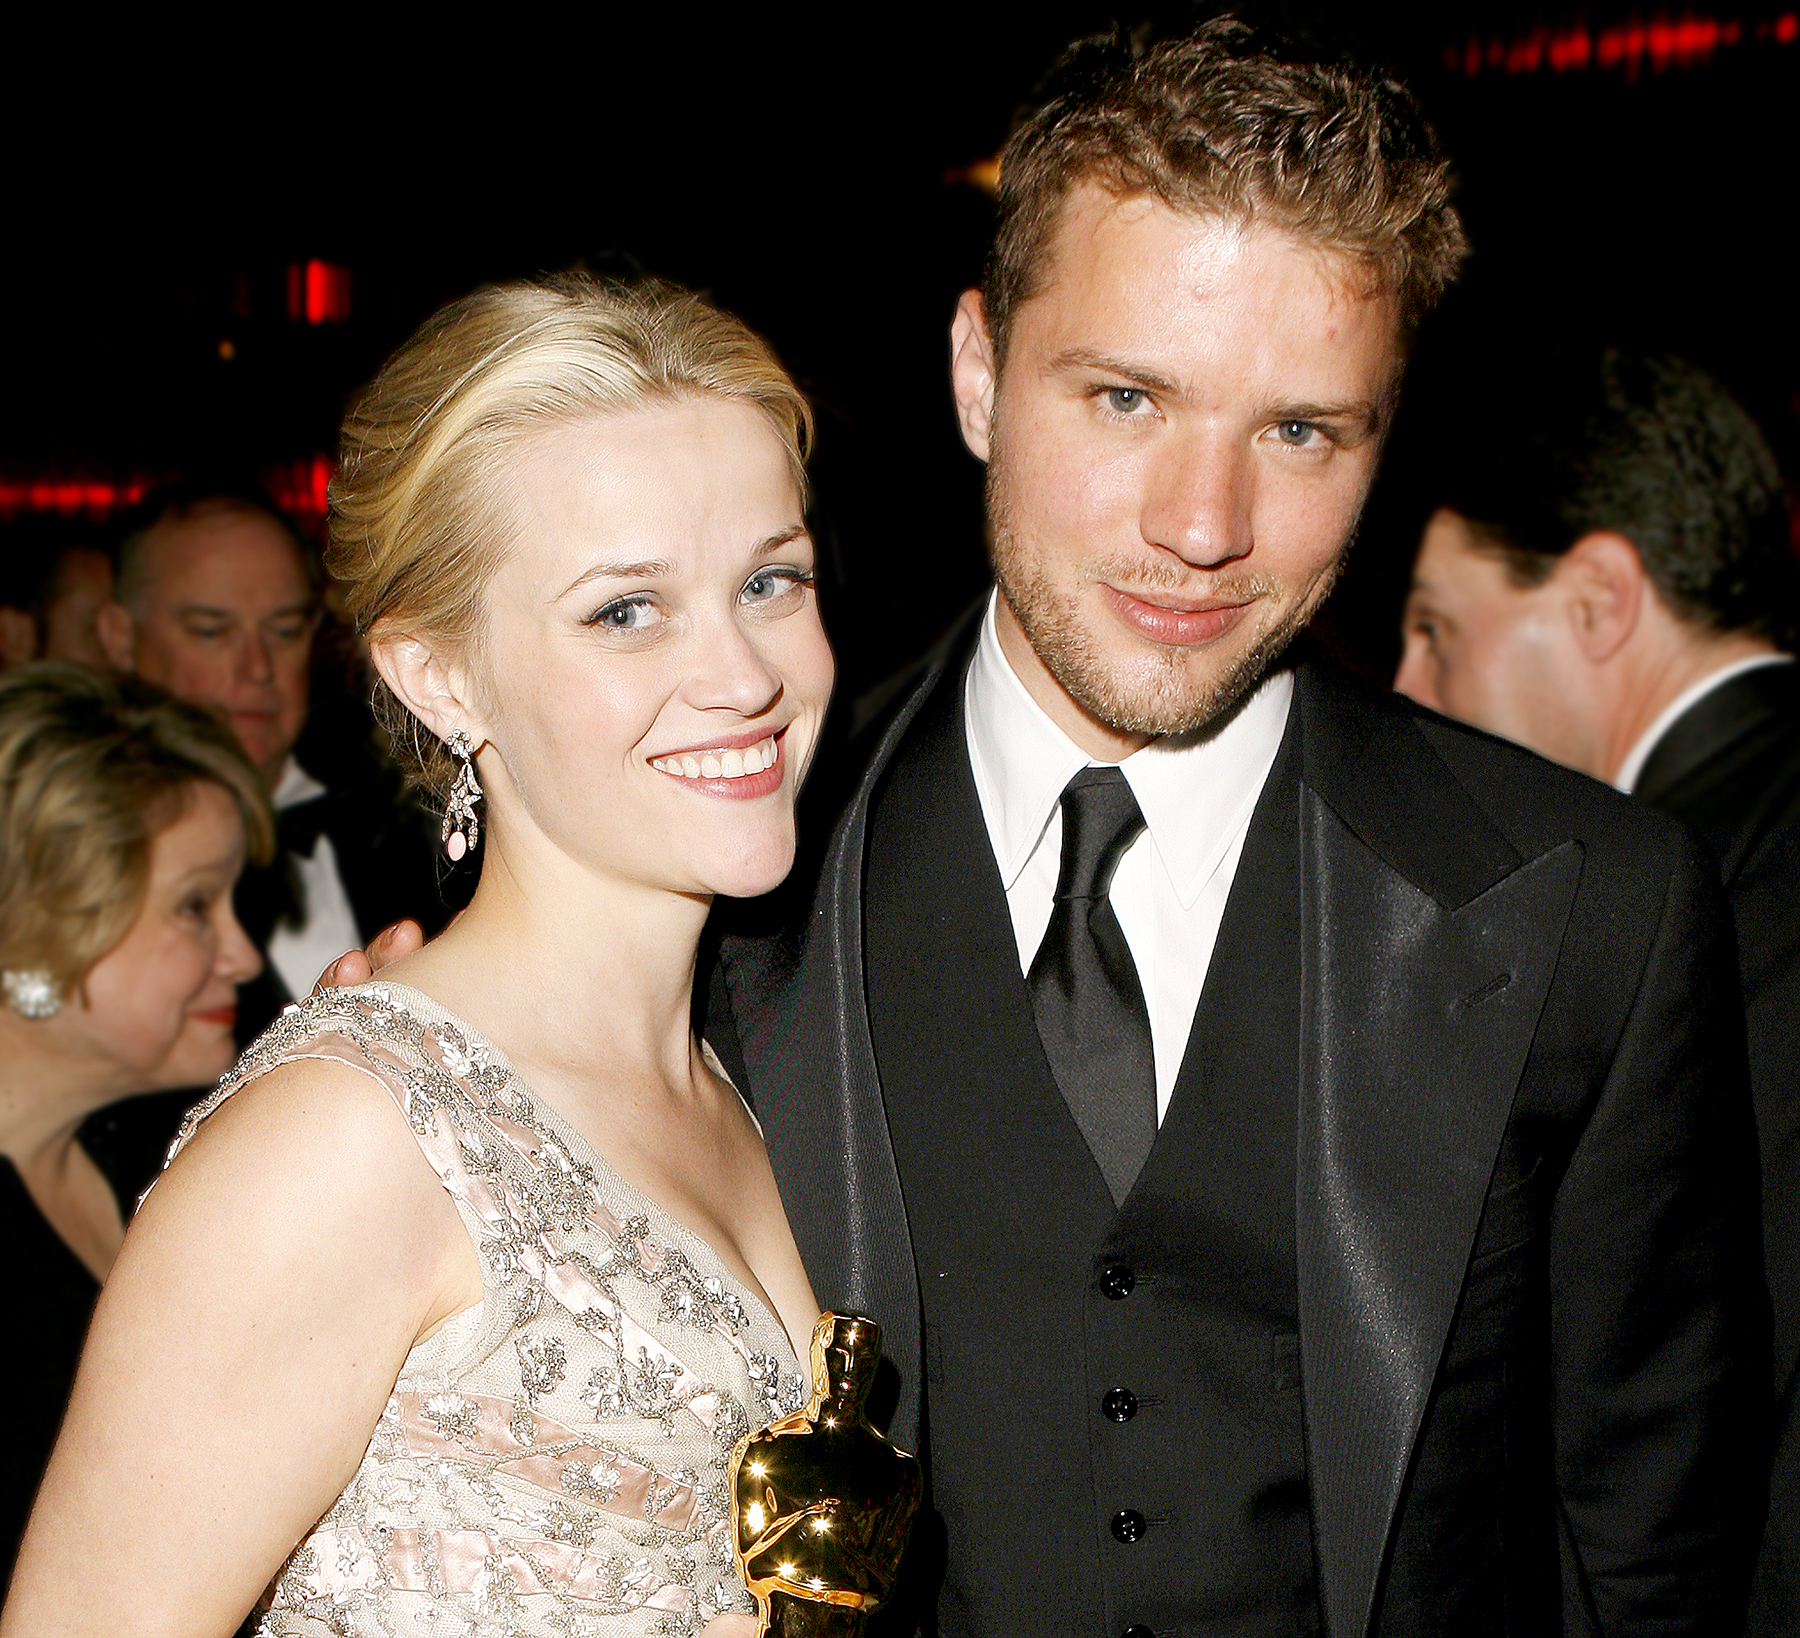 Ryan Phillippe on divorce from Reese foto